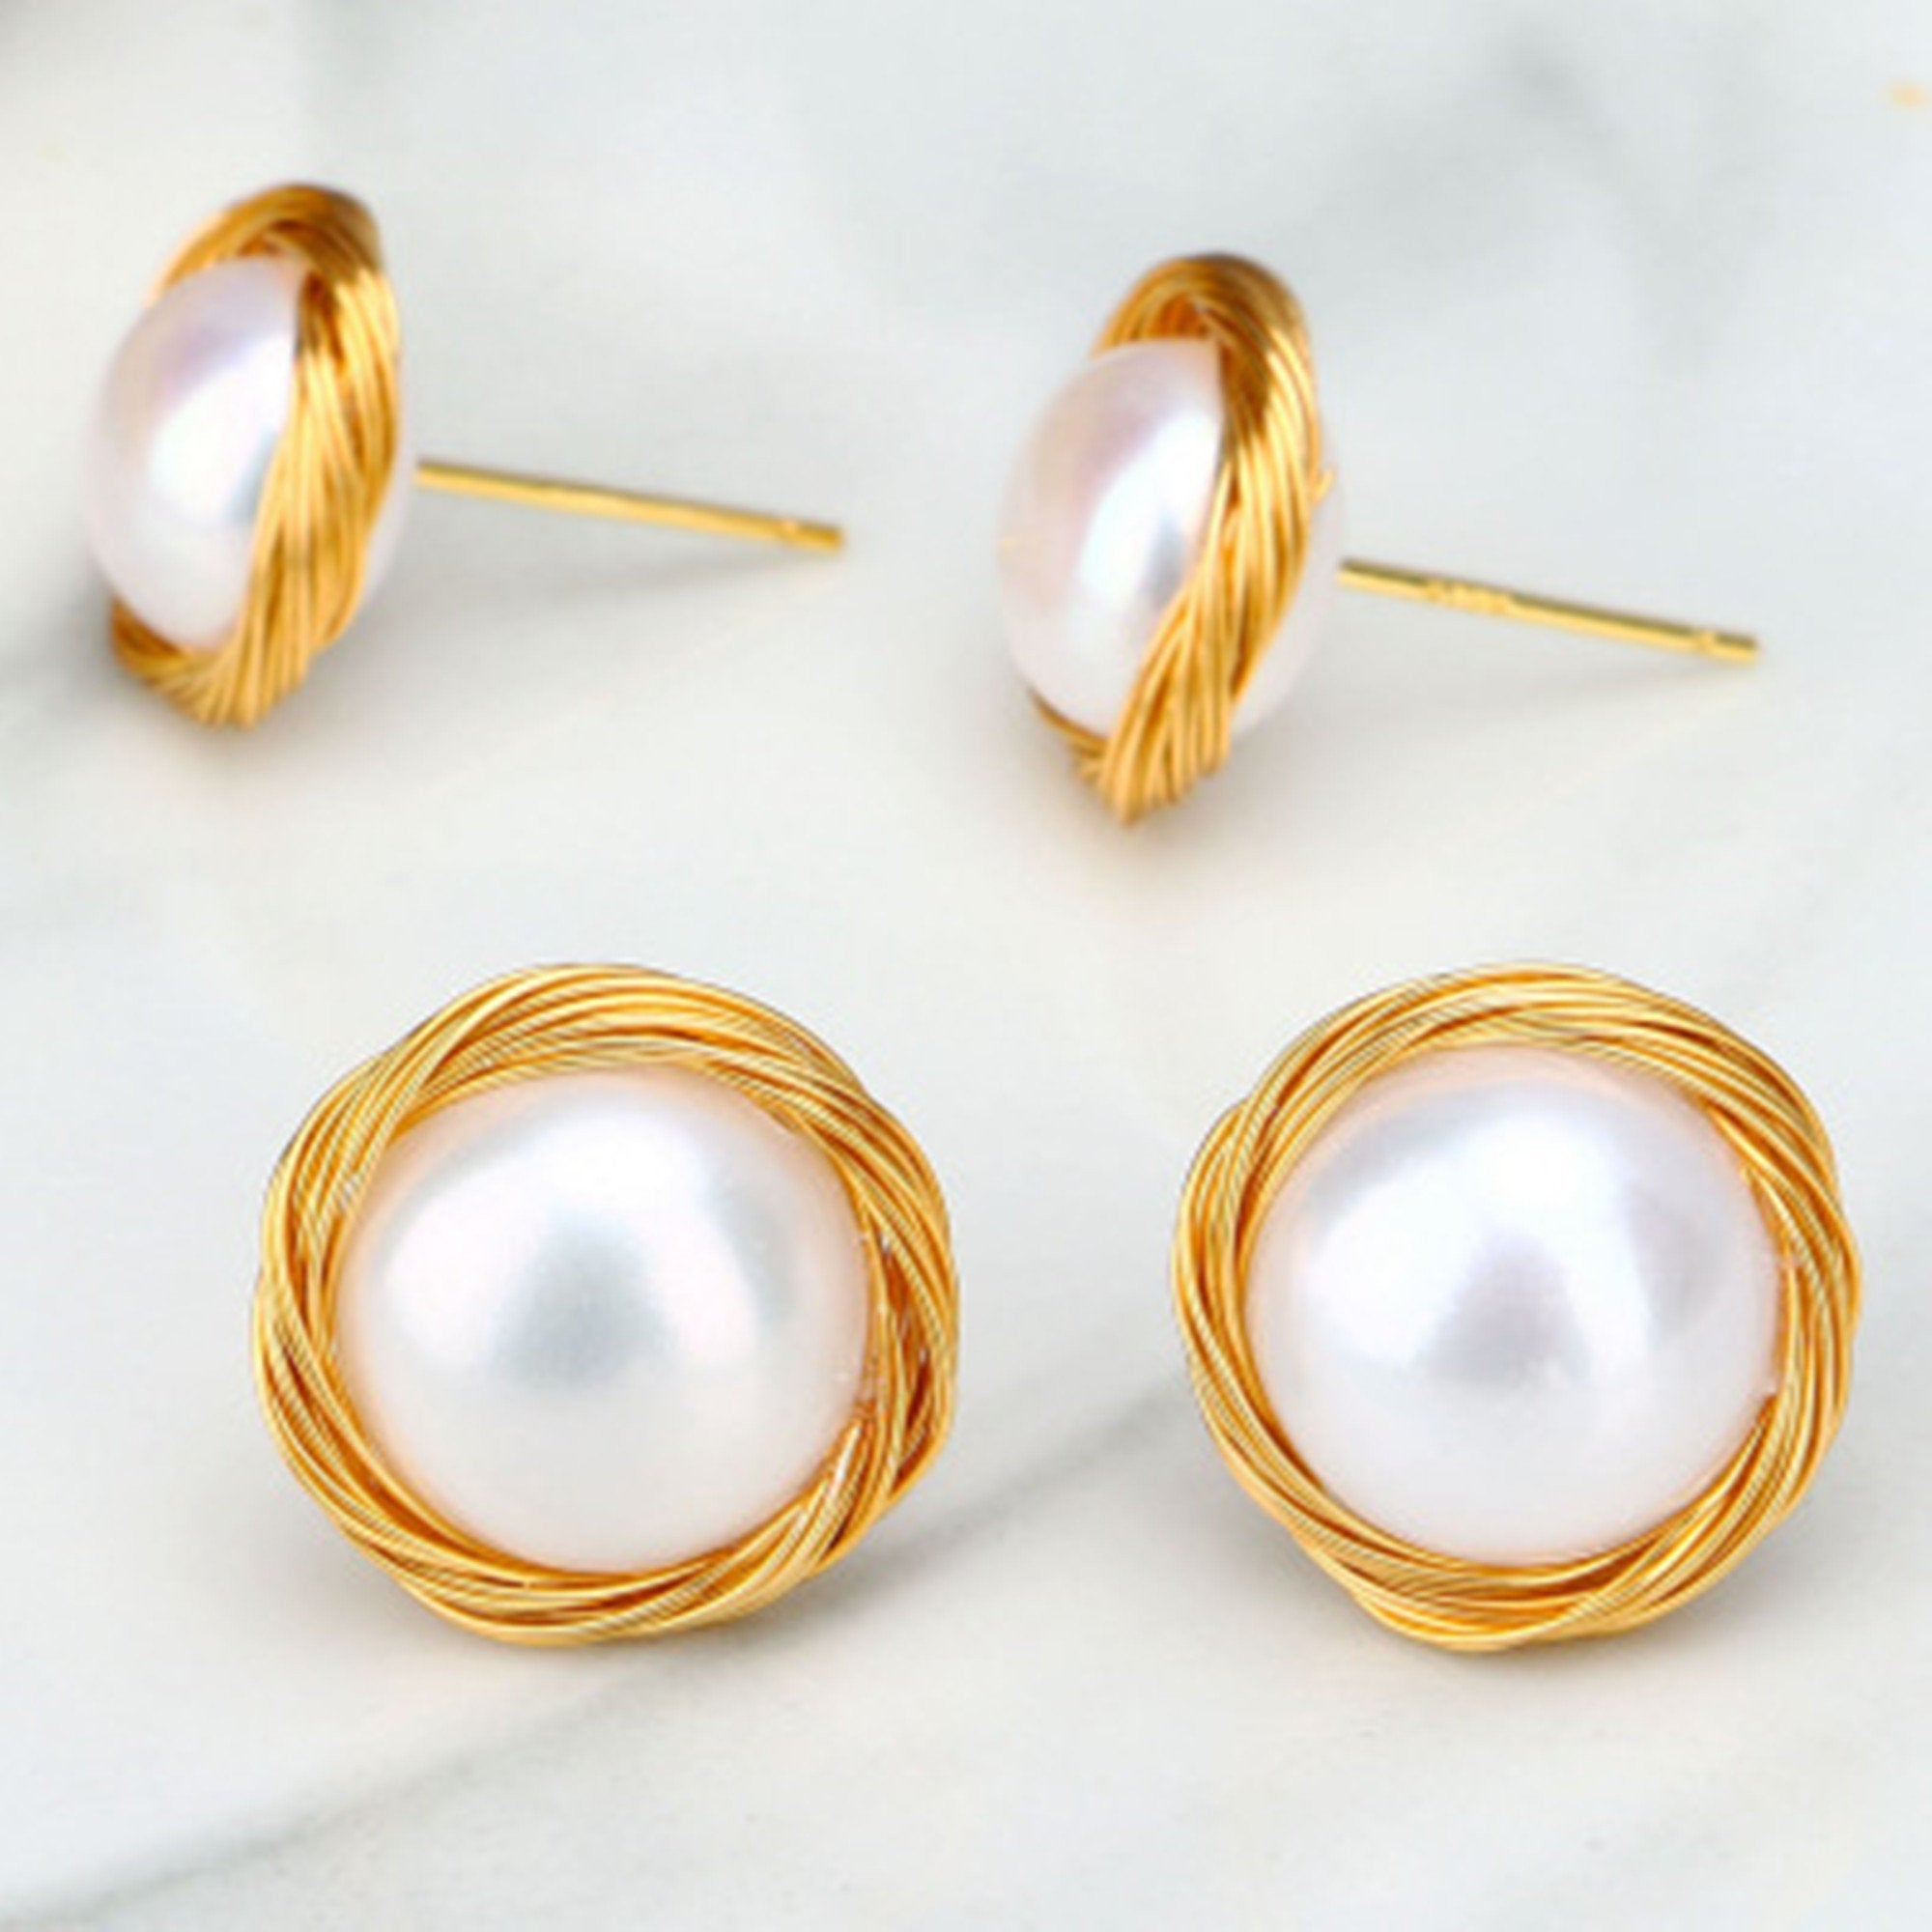 14K Gold Filled Hand Wound Pearl Stud Earrings - Sakura Avenue